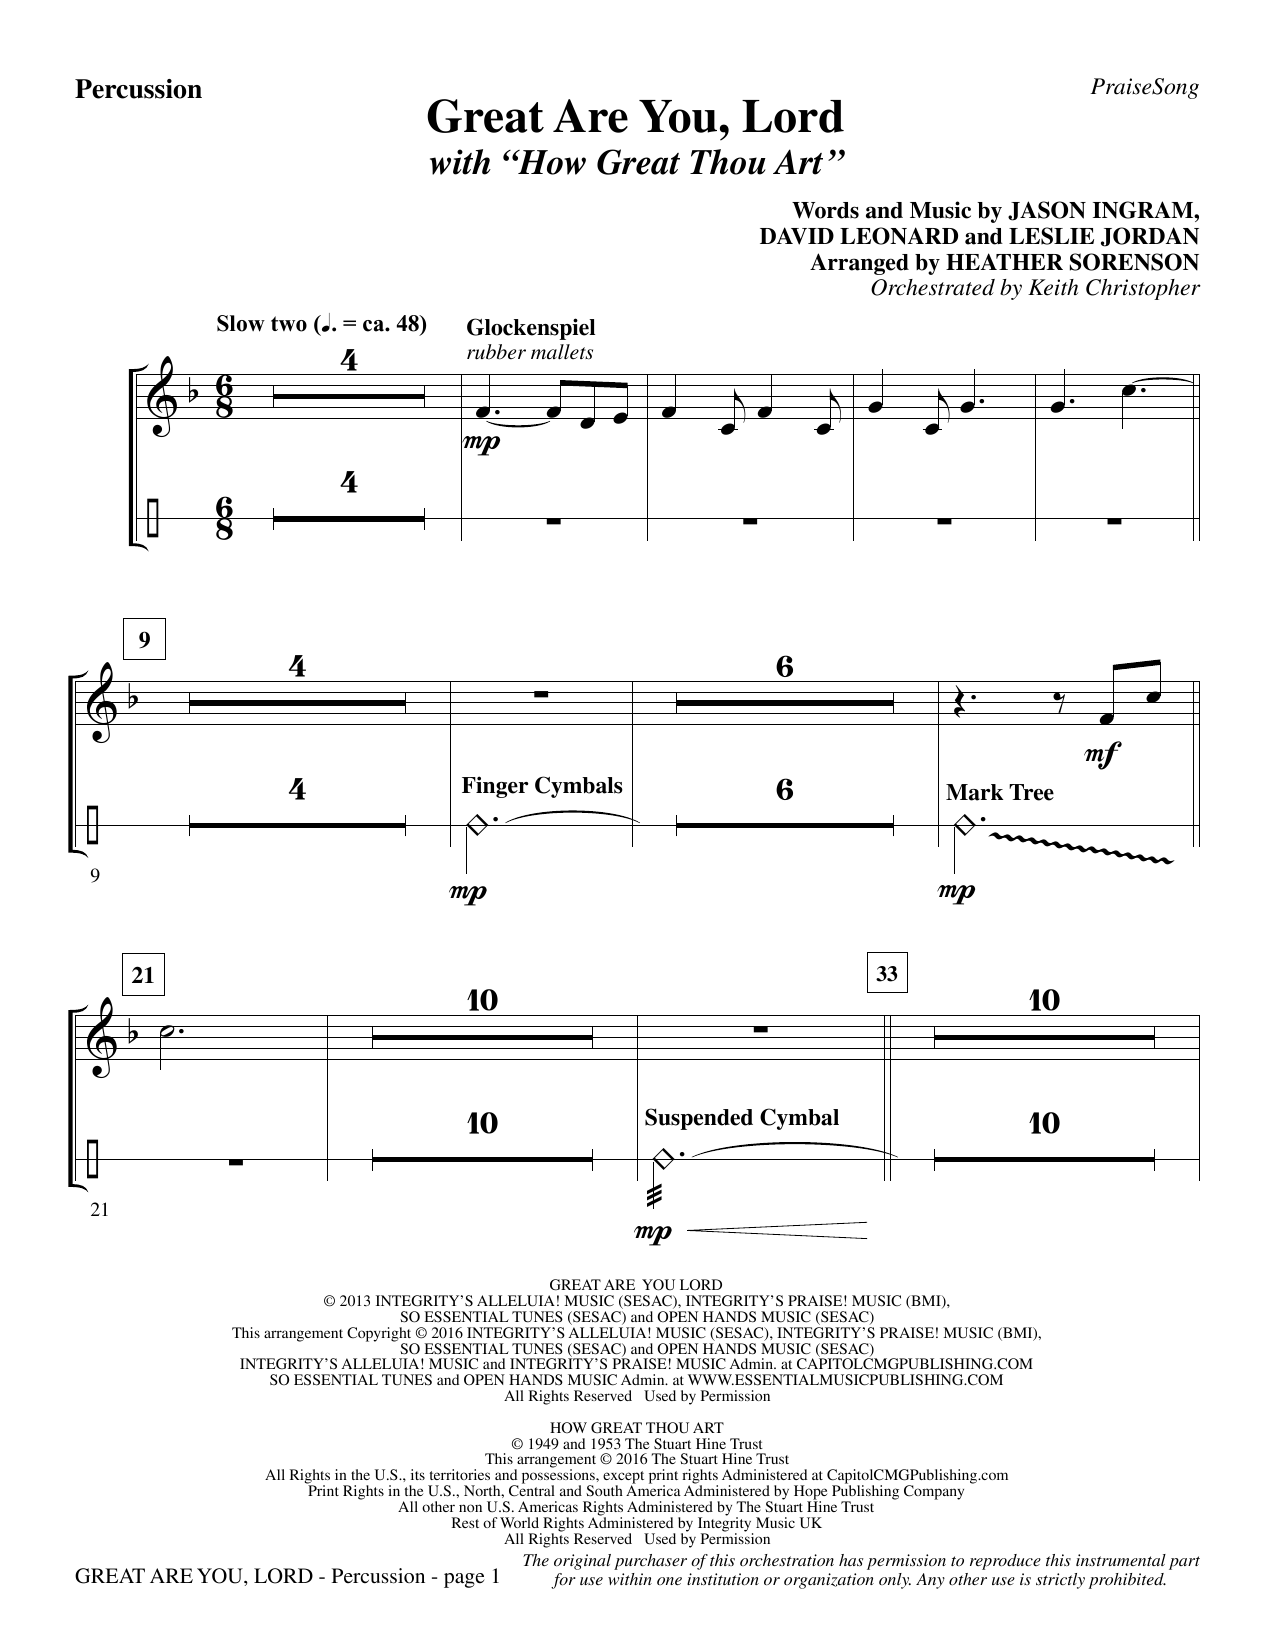 Great Are You Lord (with How Great Thou Art) - Percussion Sheet Music